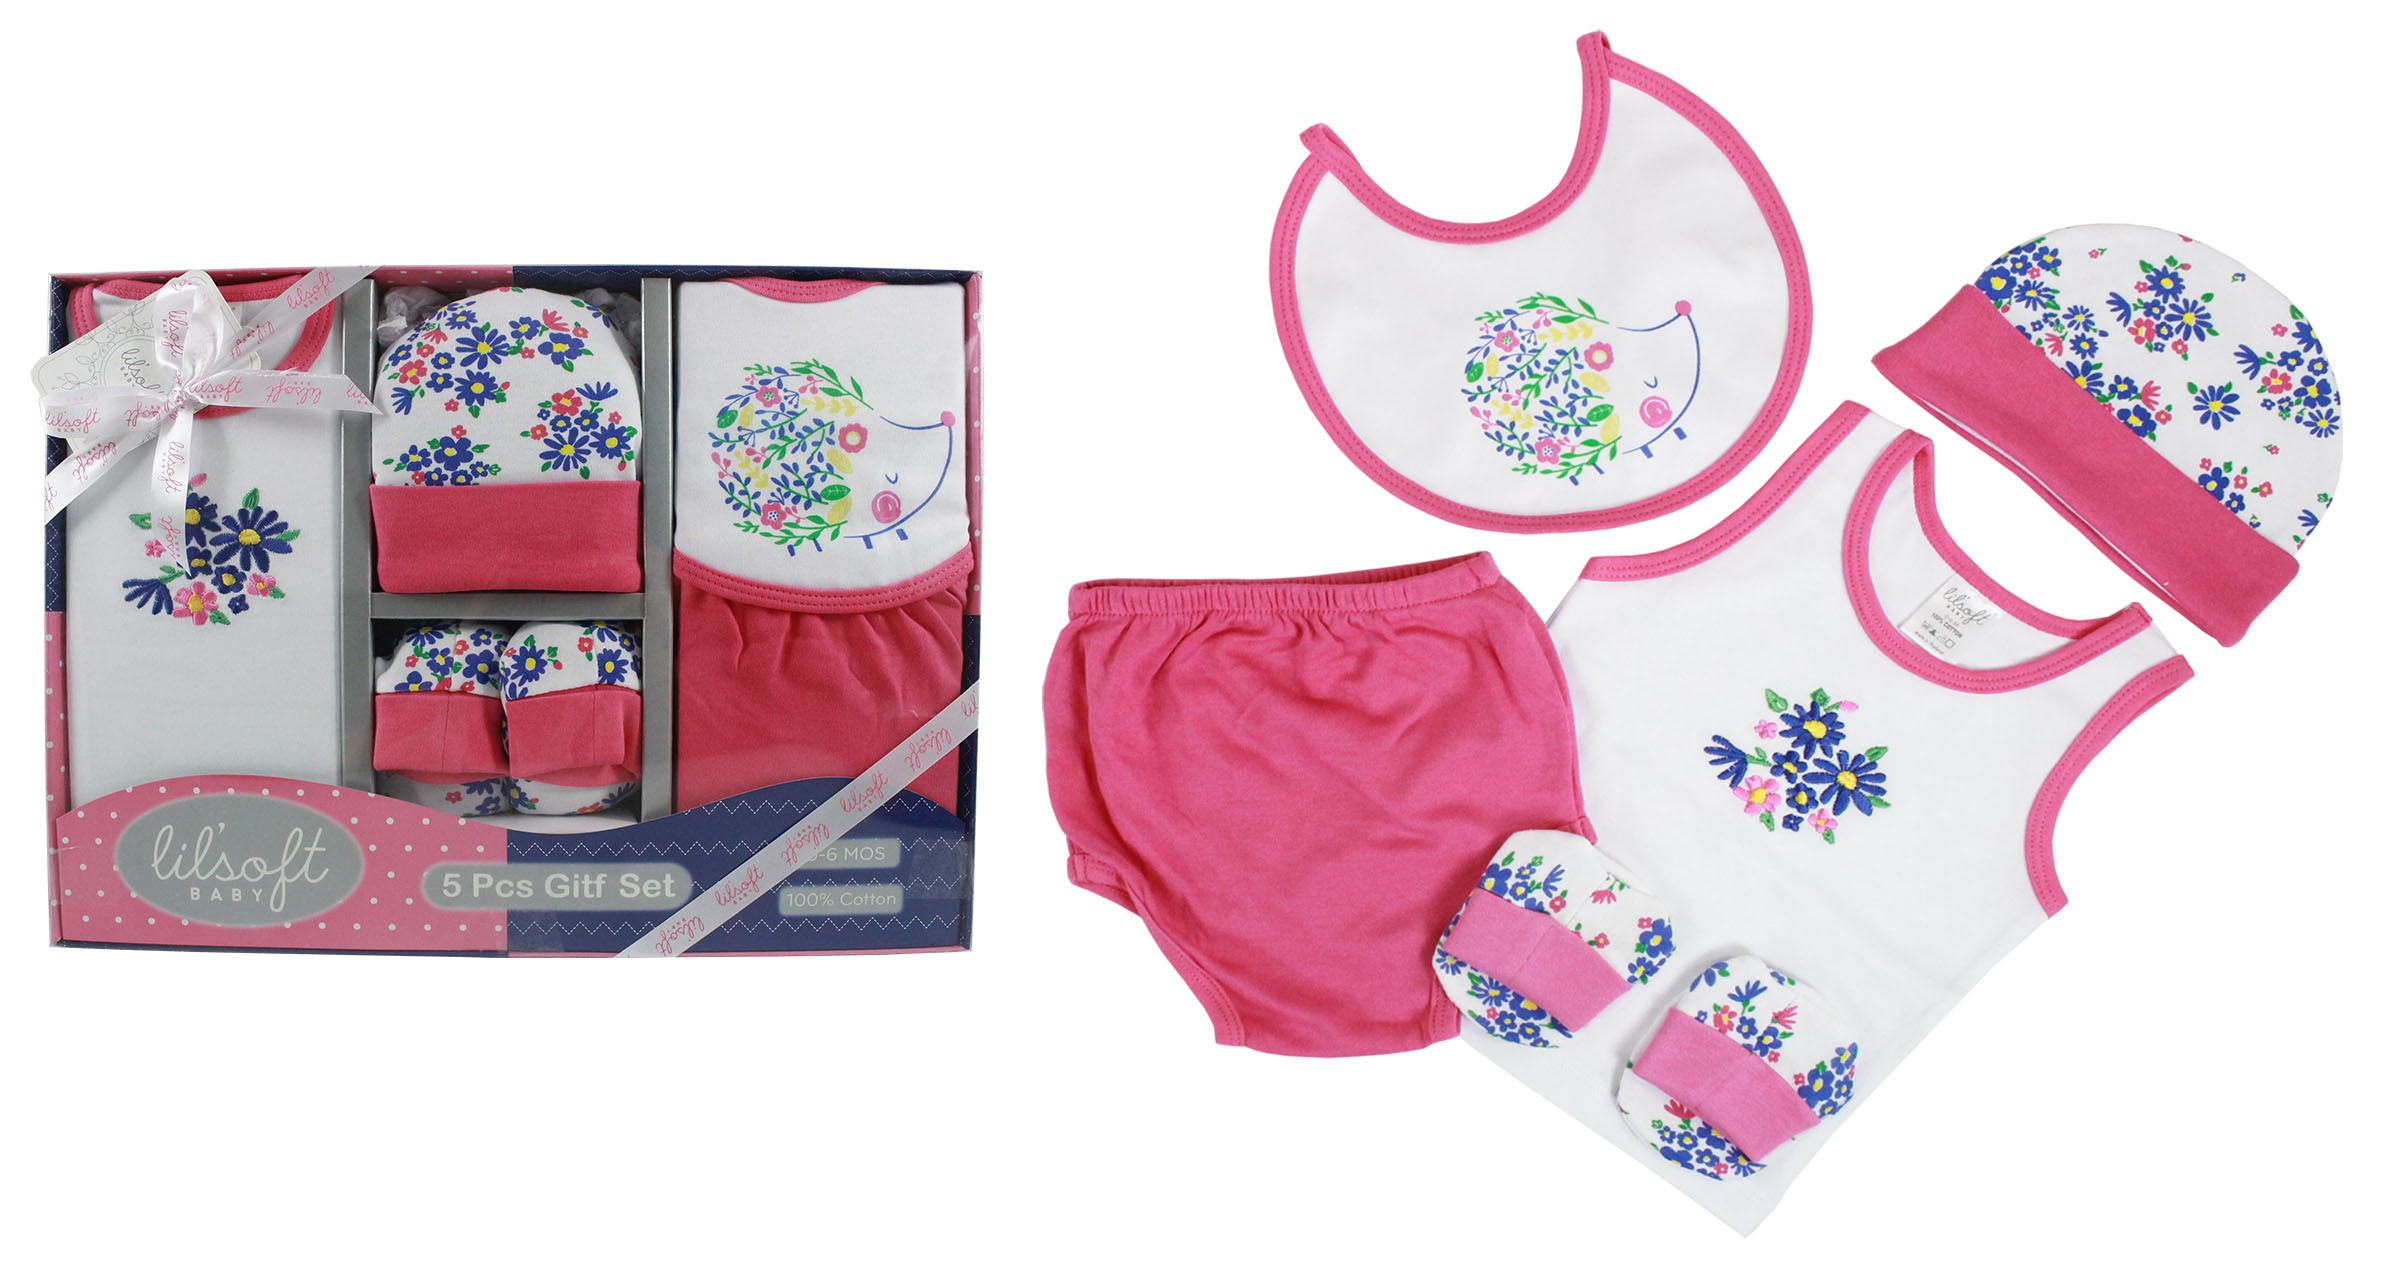 Firstcry Baby Gift Sets : Baby tank top pieces gift set for sets